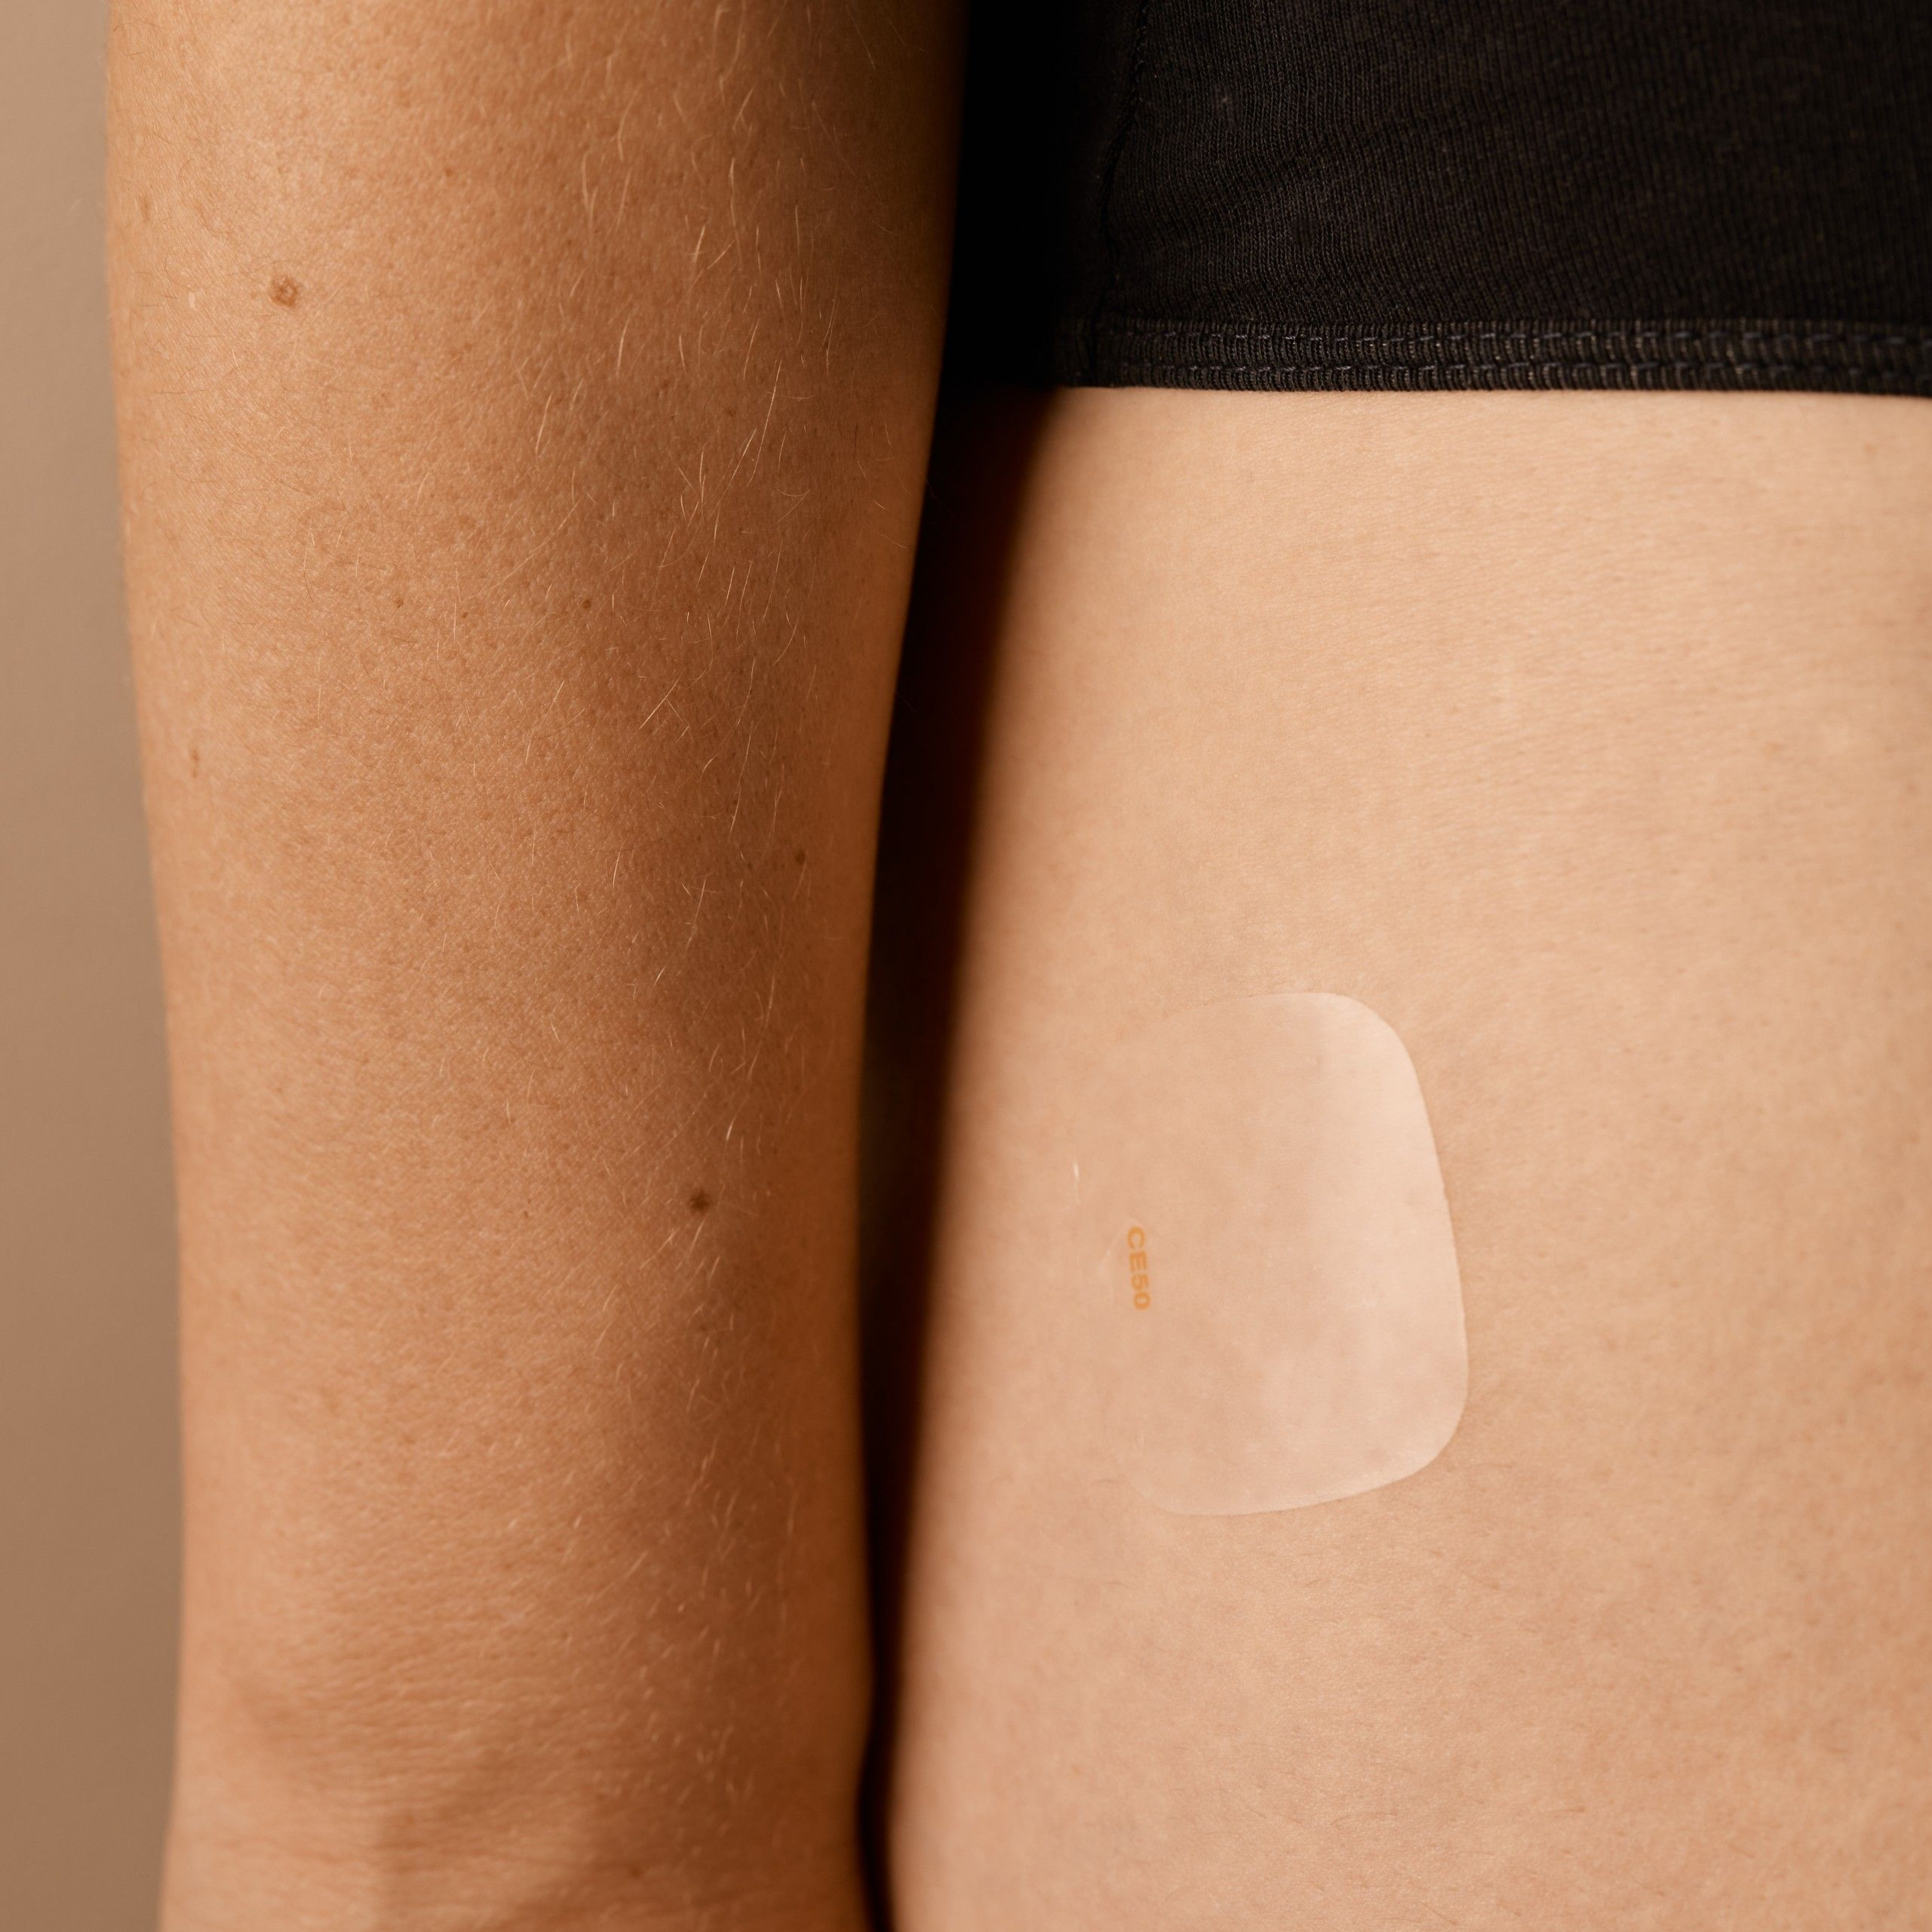 HRT patch applied to skin